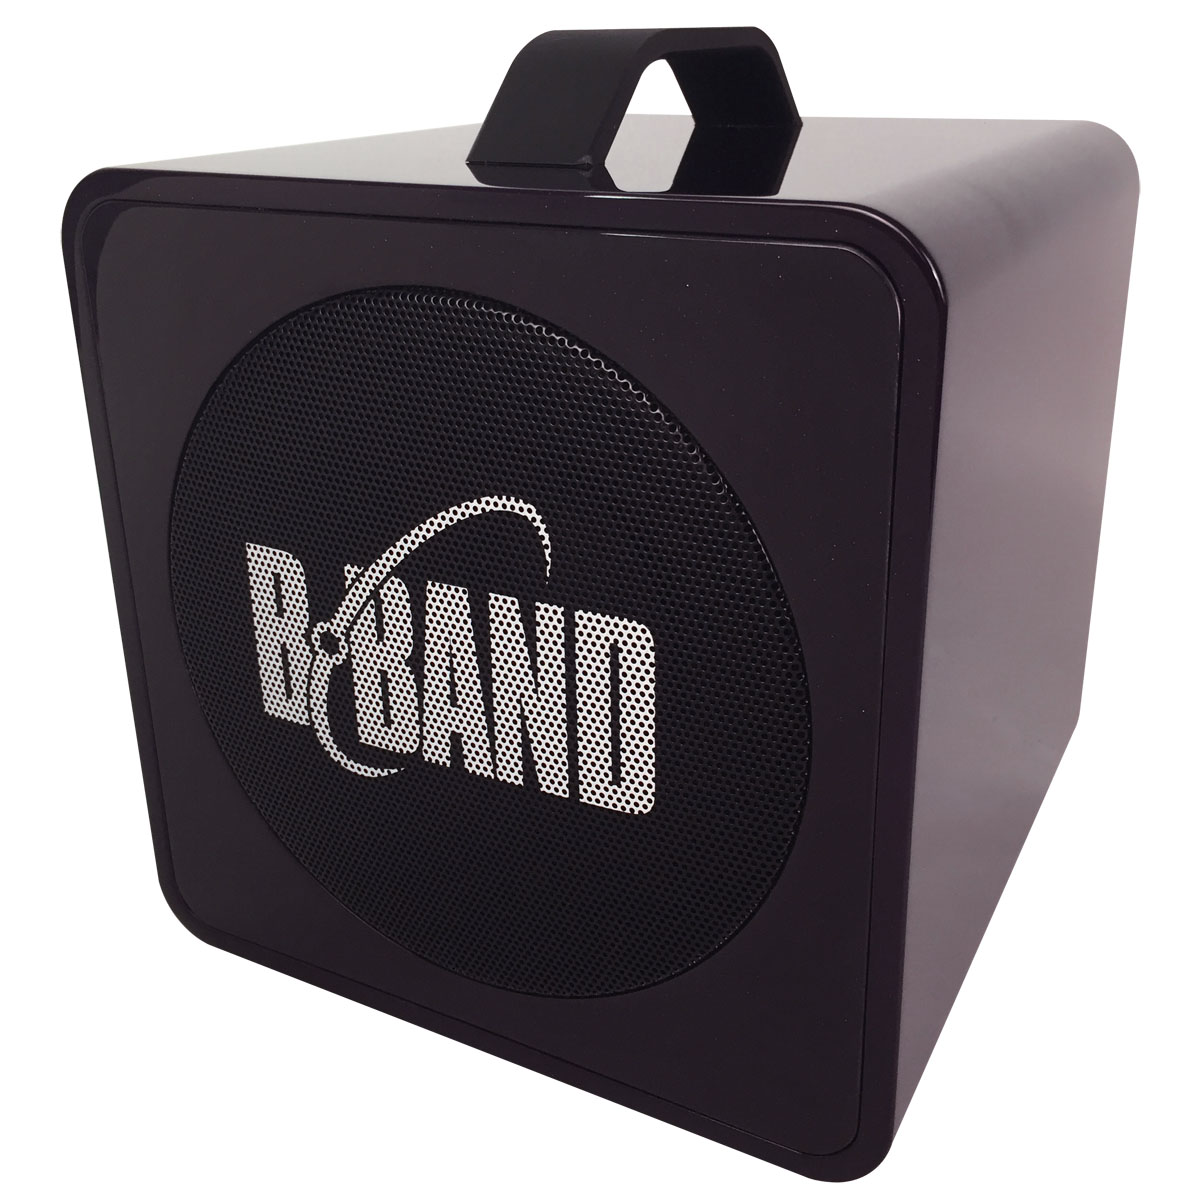 B-Band / AC45J Black Portable Acoustic Amplifier 充電式 ポータブルアンプ【渋谷店】